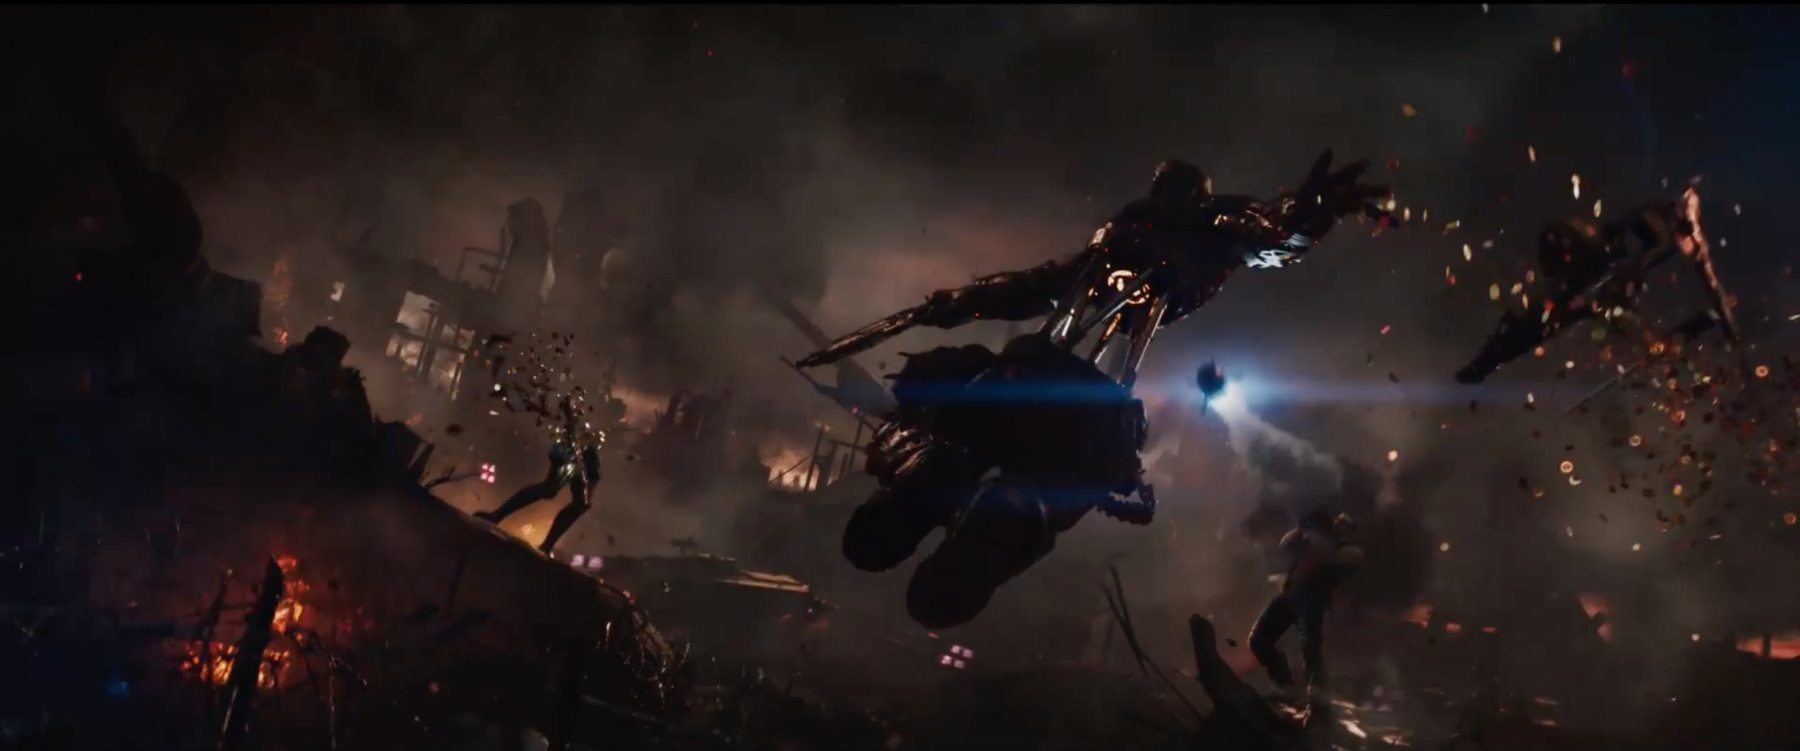 Ready Player One Hd Wallpapers 7wallpapers Net